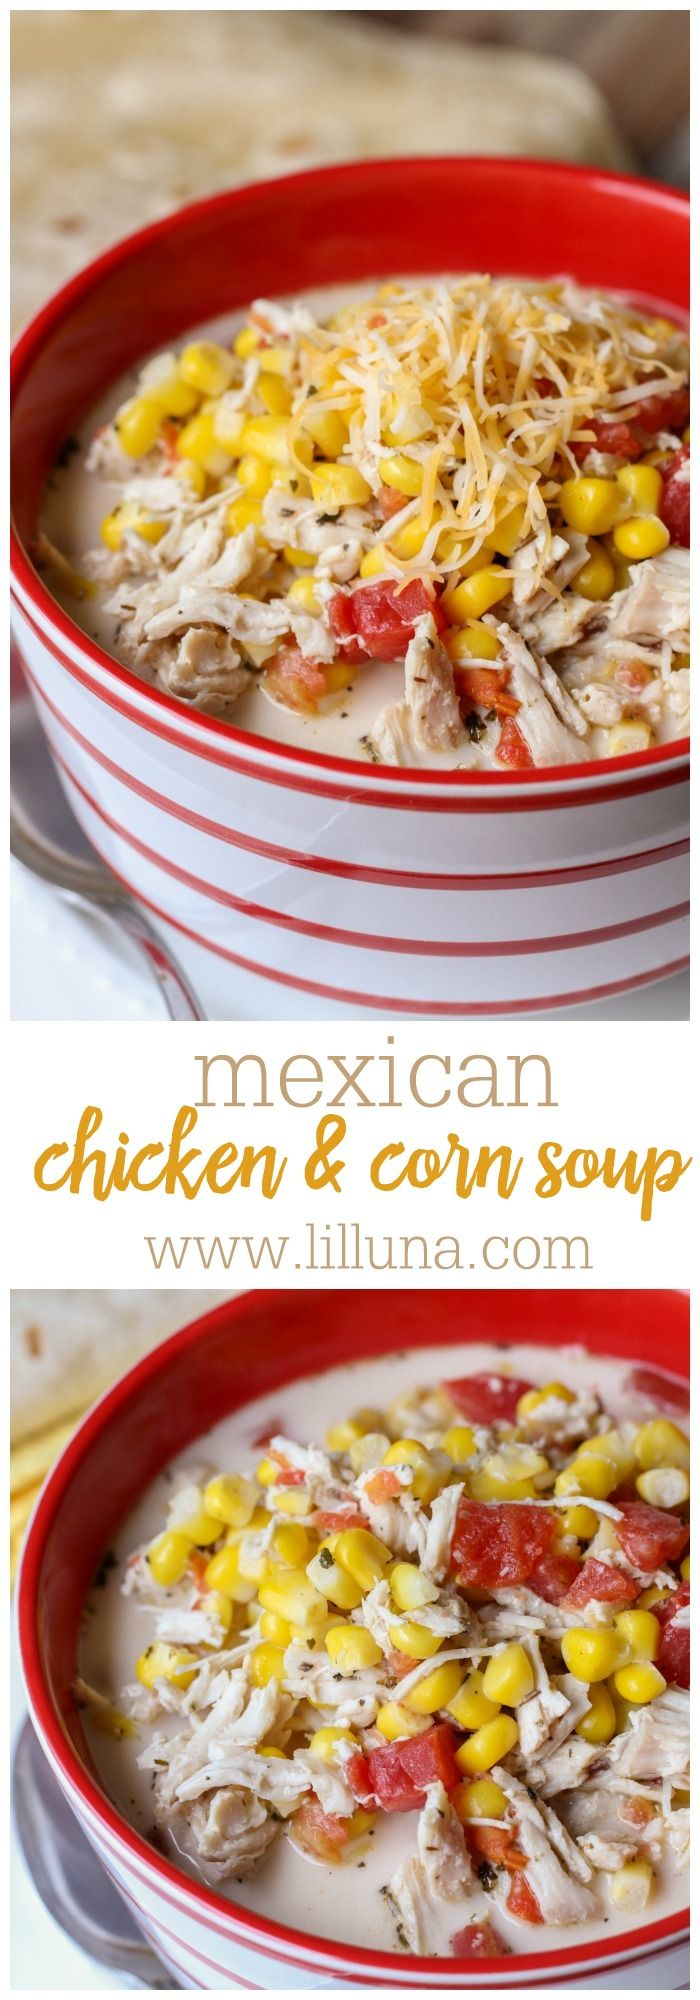 Delicious Mexican Chicken and Corn Soup - this recipe is so simple and can be…